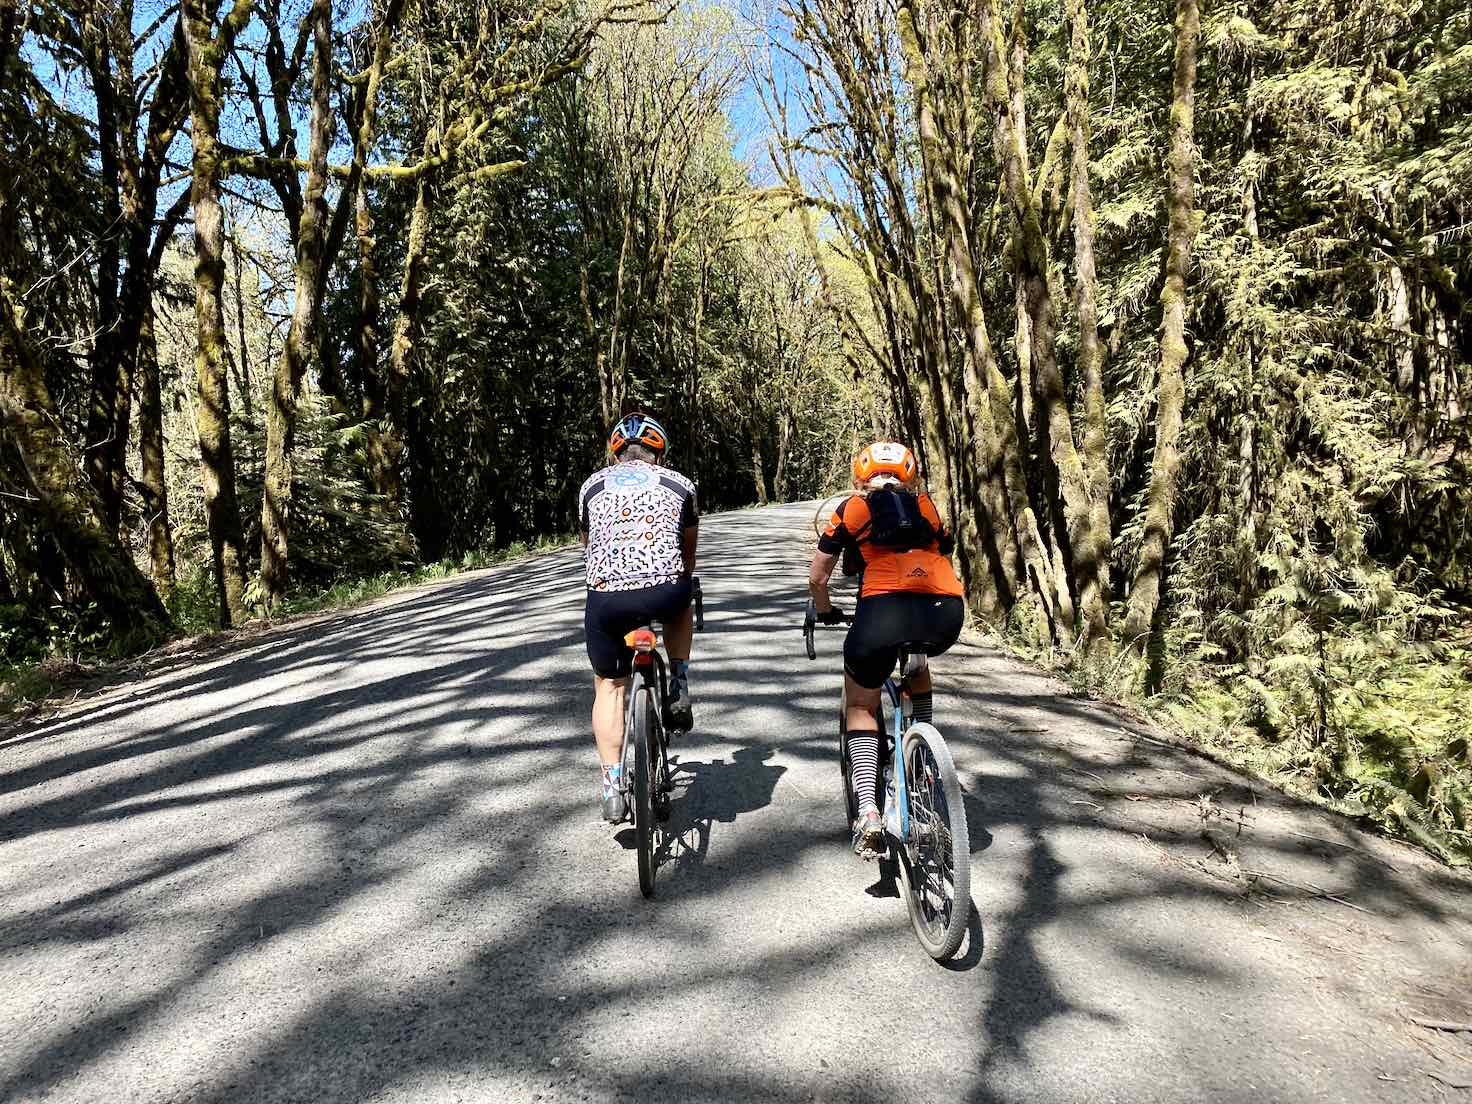 Riding along the North Yamhill river.